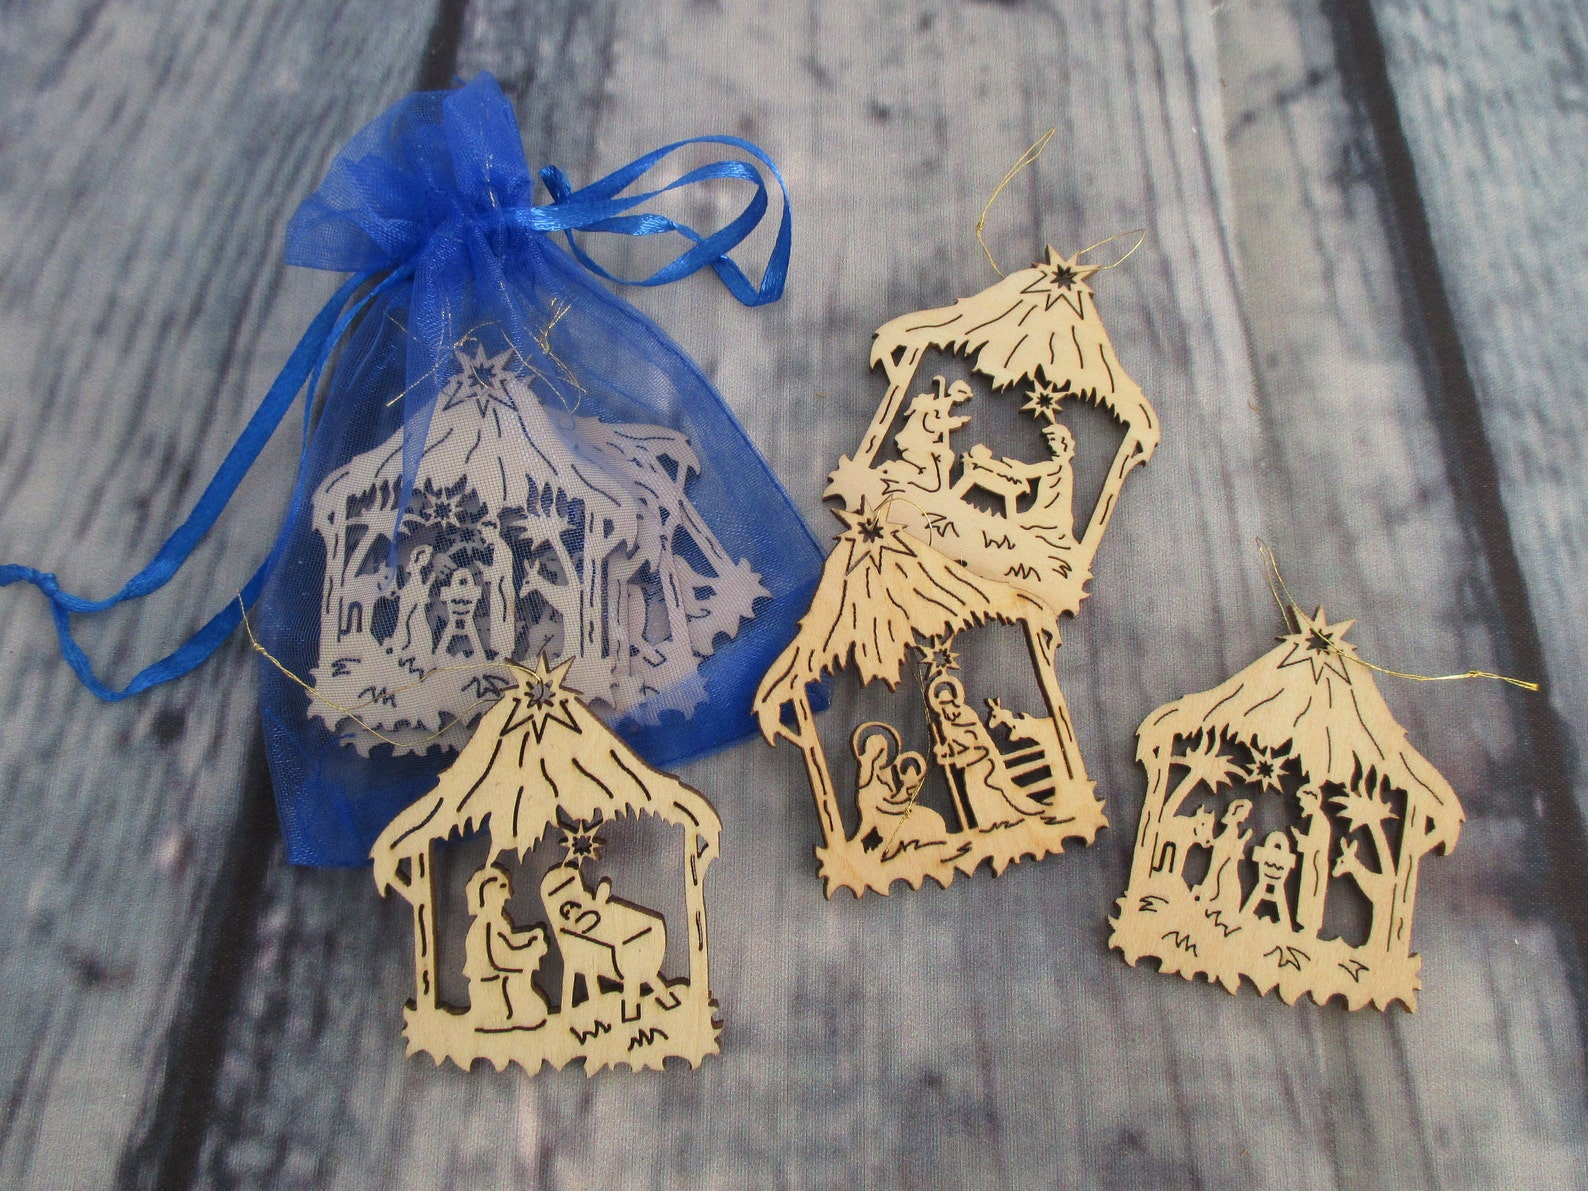 Nativity Ornaments Erzgebirge Wood Christmas Ornaments Hanging Wooden Nativity Vintage Wood German Xmas Gift Crafts Handmade Under 10